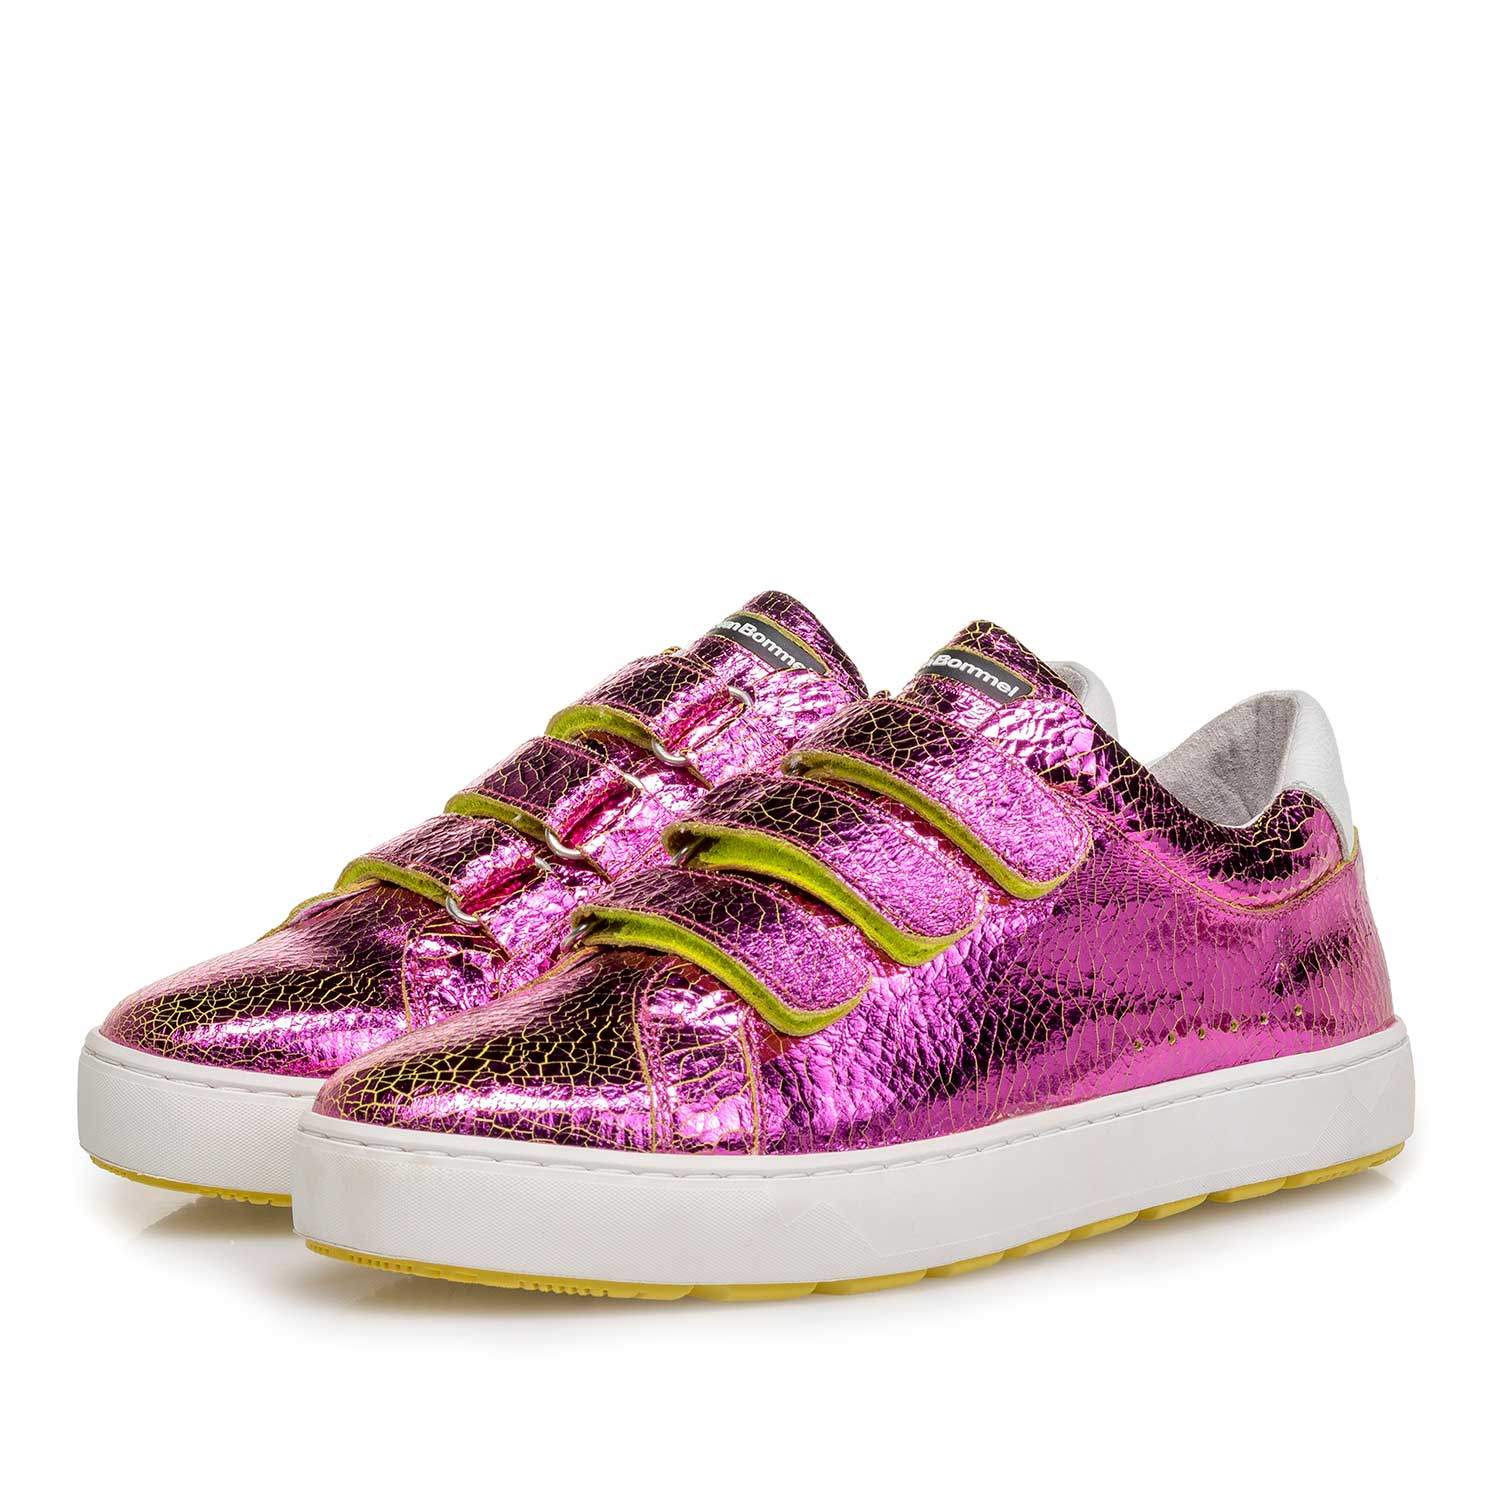 85273/18 - Pink metallic leather sneaker with craquelé effect